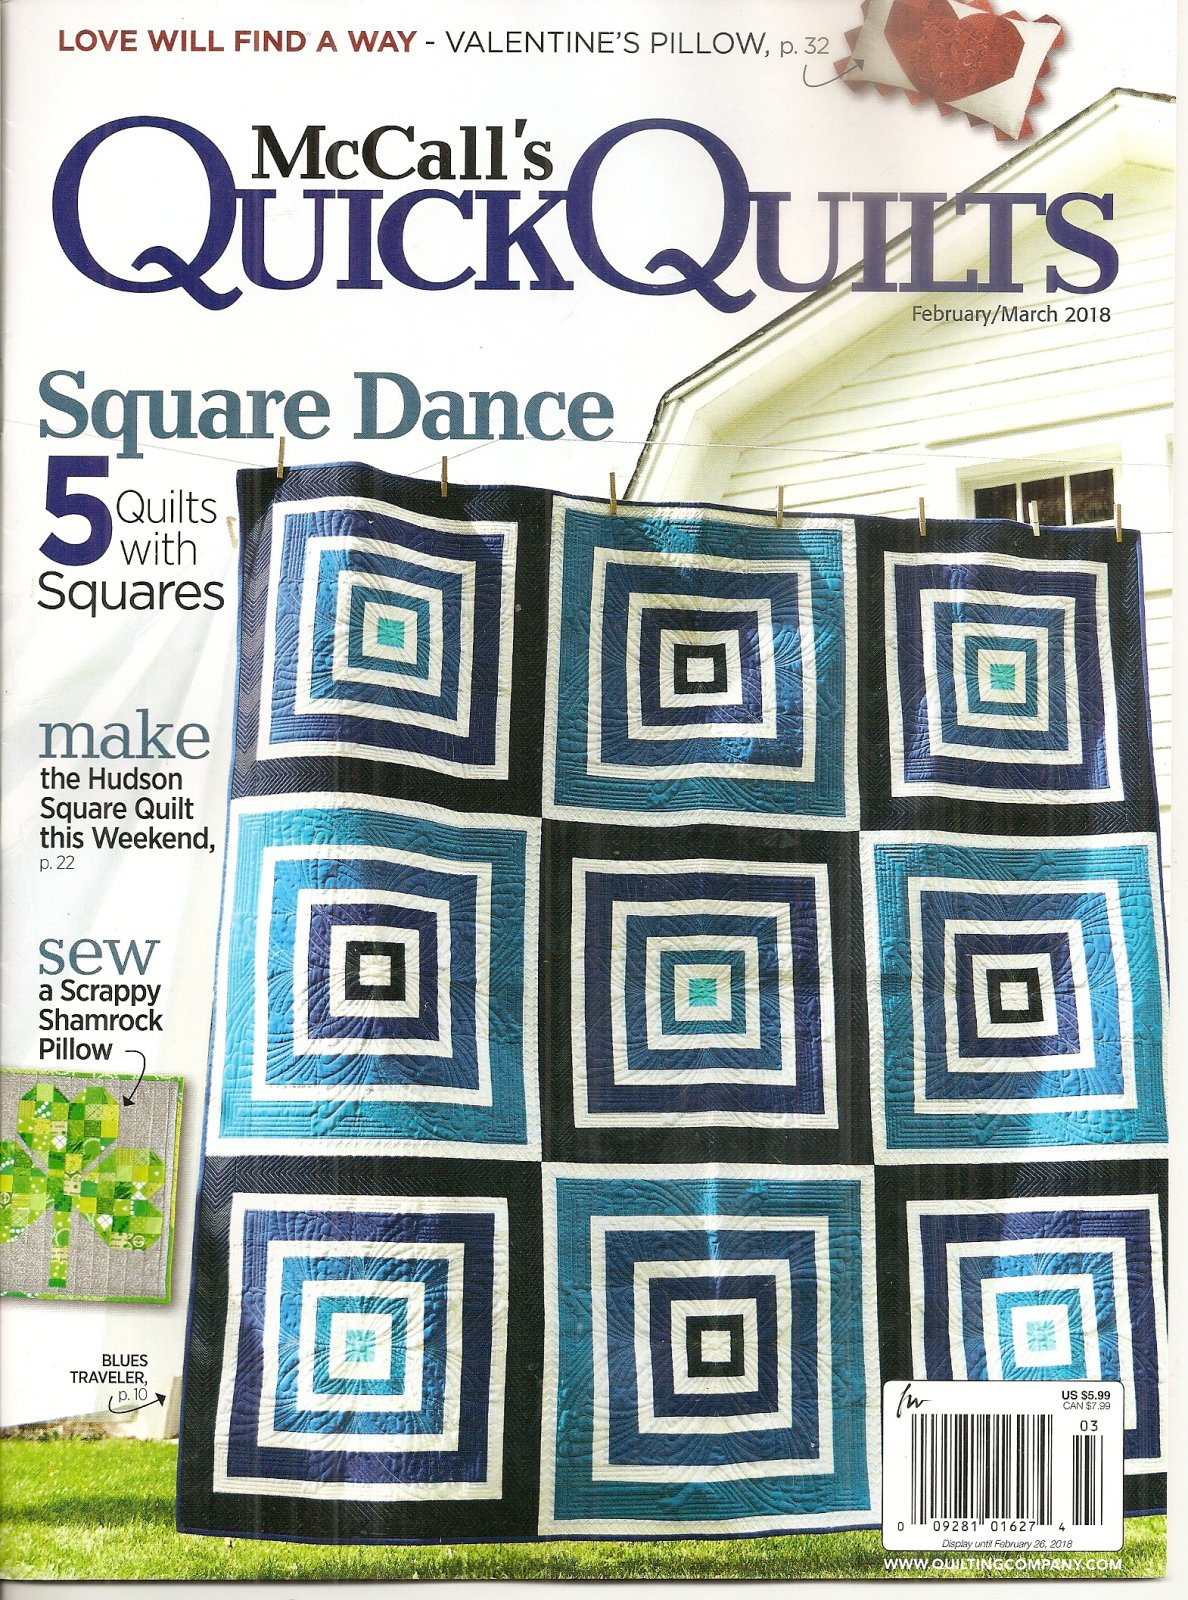 McCall's Quick Quilts February/March 2018